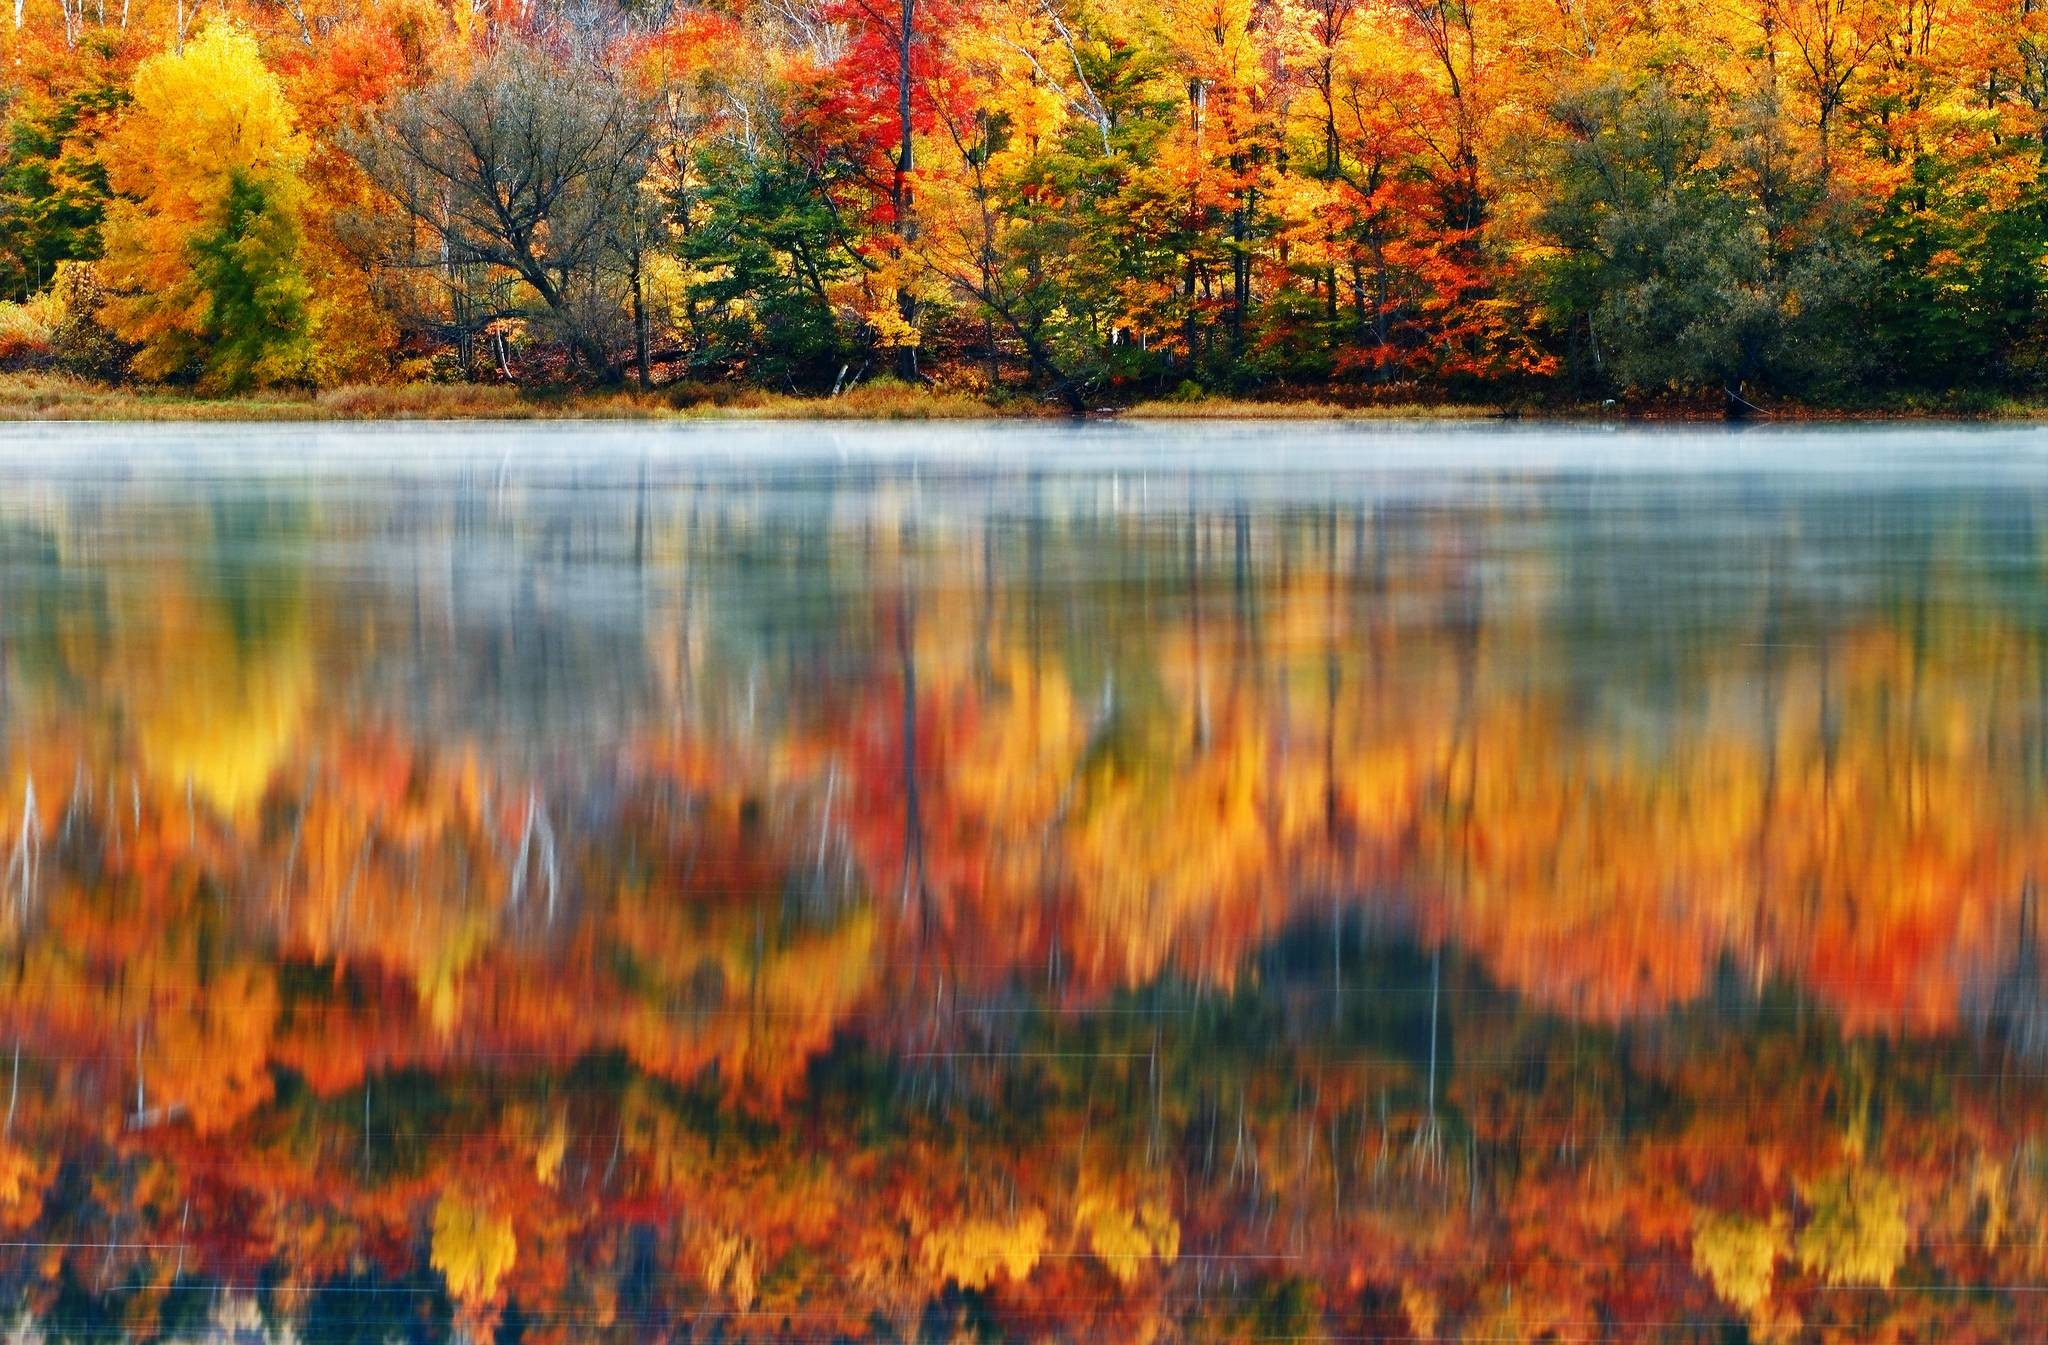 New england fall wallpaper 36 images 2048x1345 wallpaper usa new england new hampshire nature morning lake voltagebd Image collections